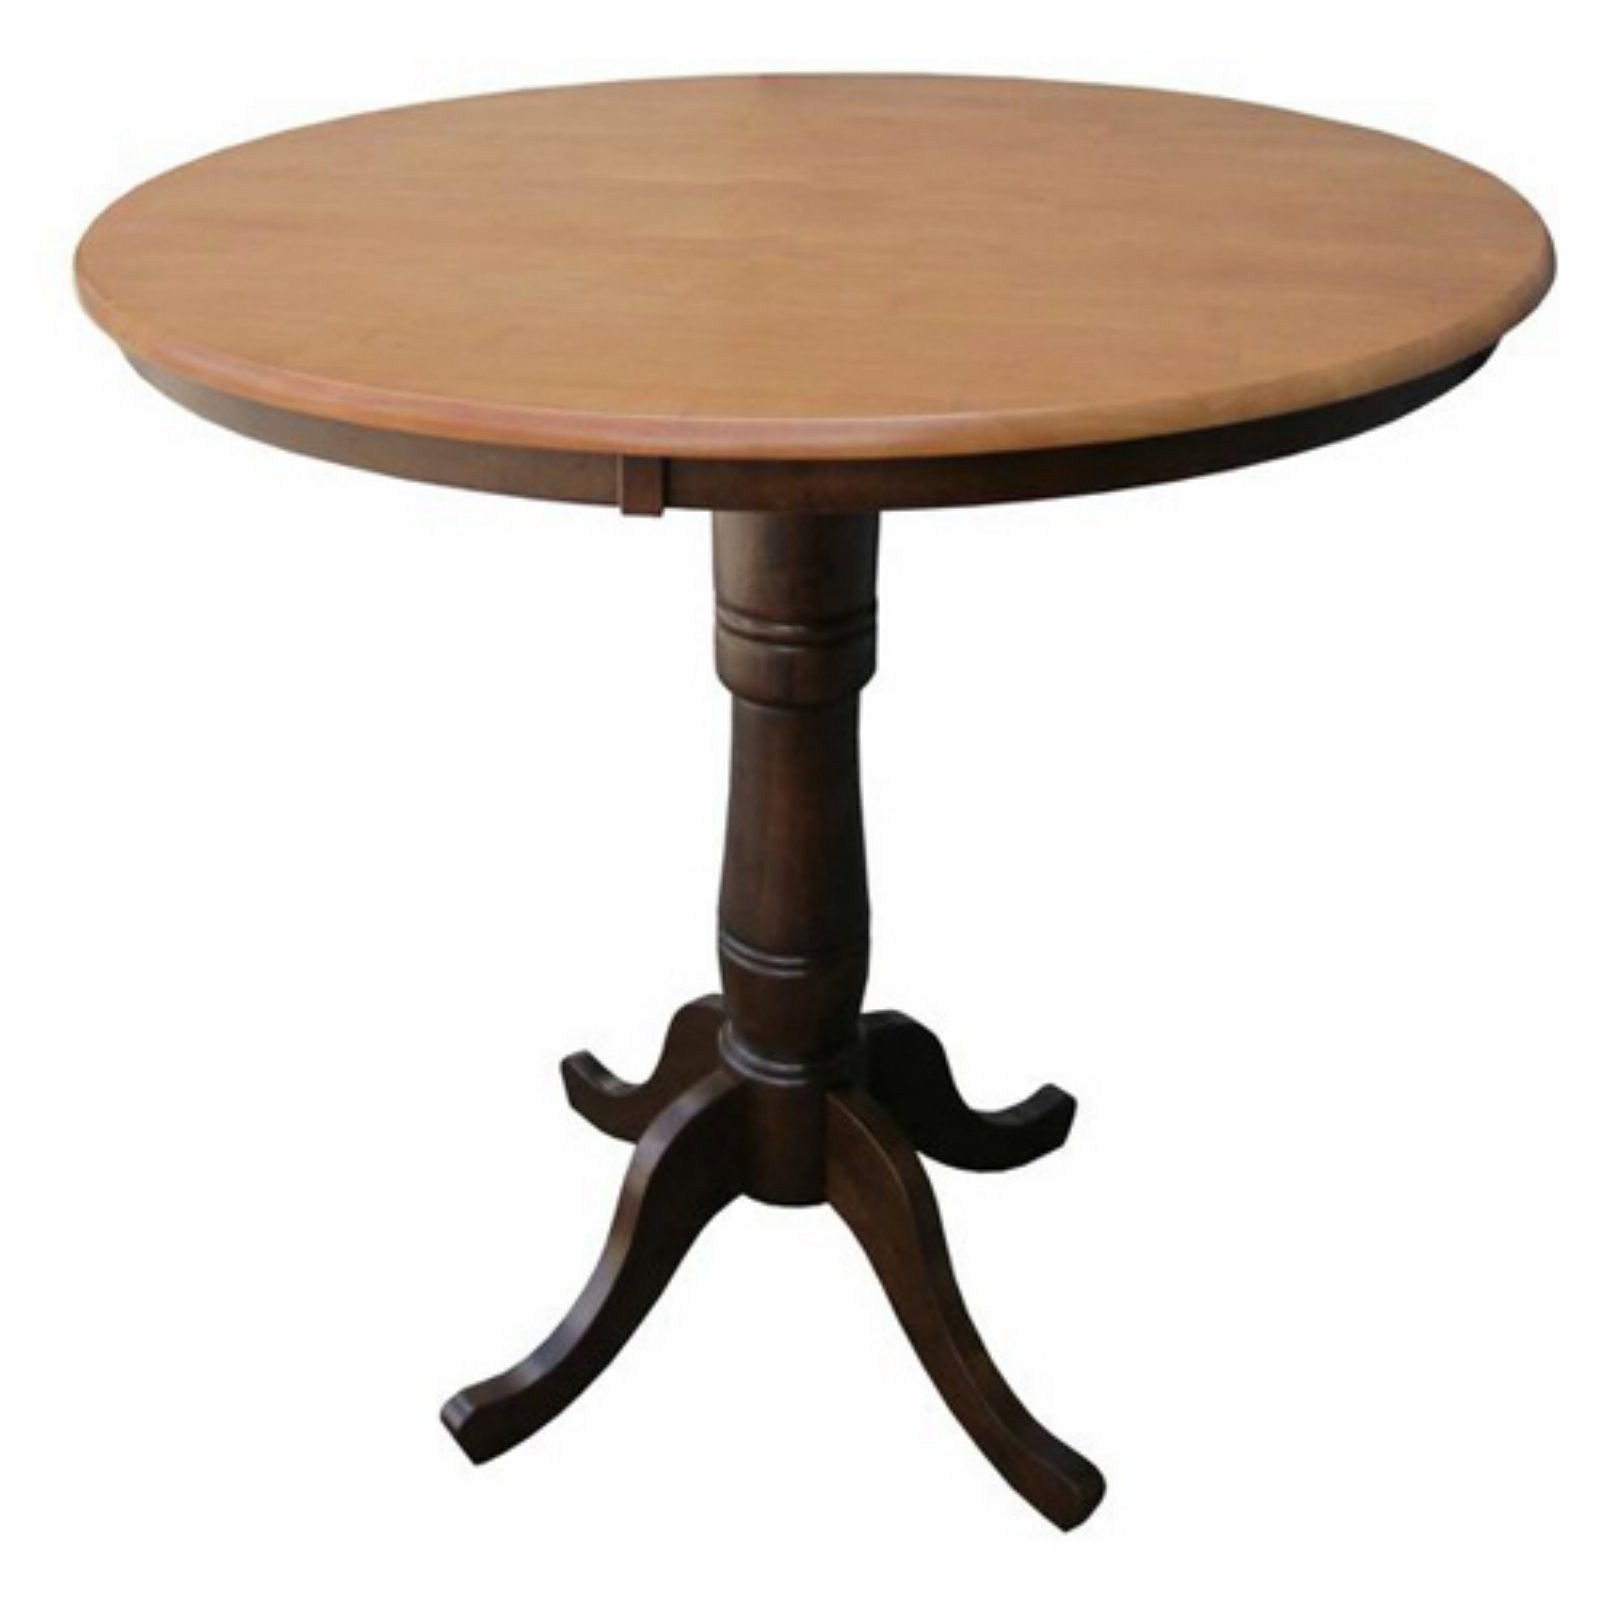 International Concepts Piperton 36 in. Round Top Pedestal Counter Height Dining Table